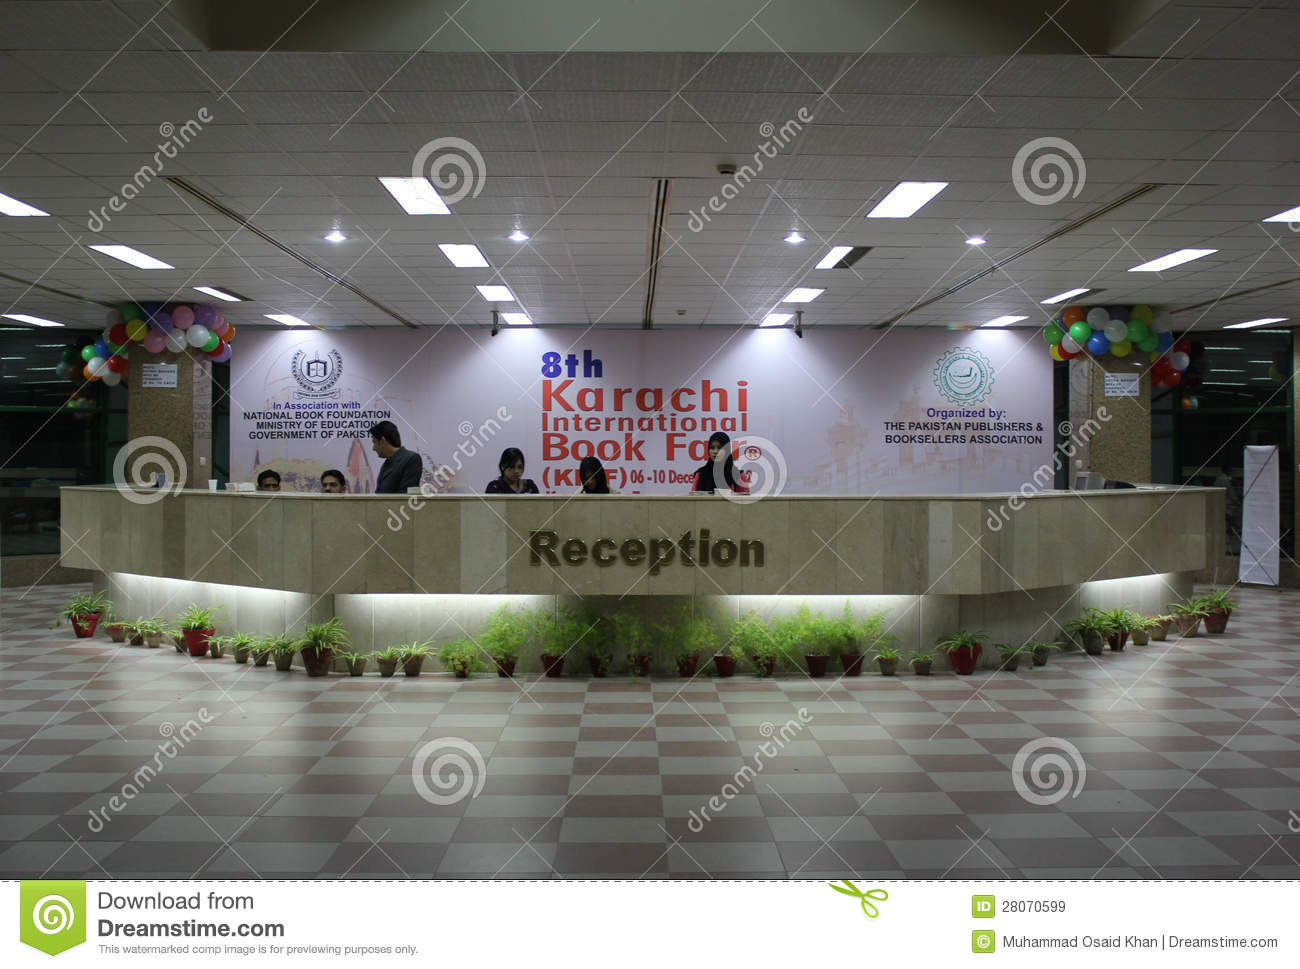 Exhibition Stall Designers In Karachi : 8th karachi international book fair editorial stock image image of